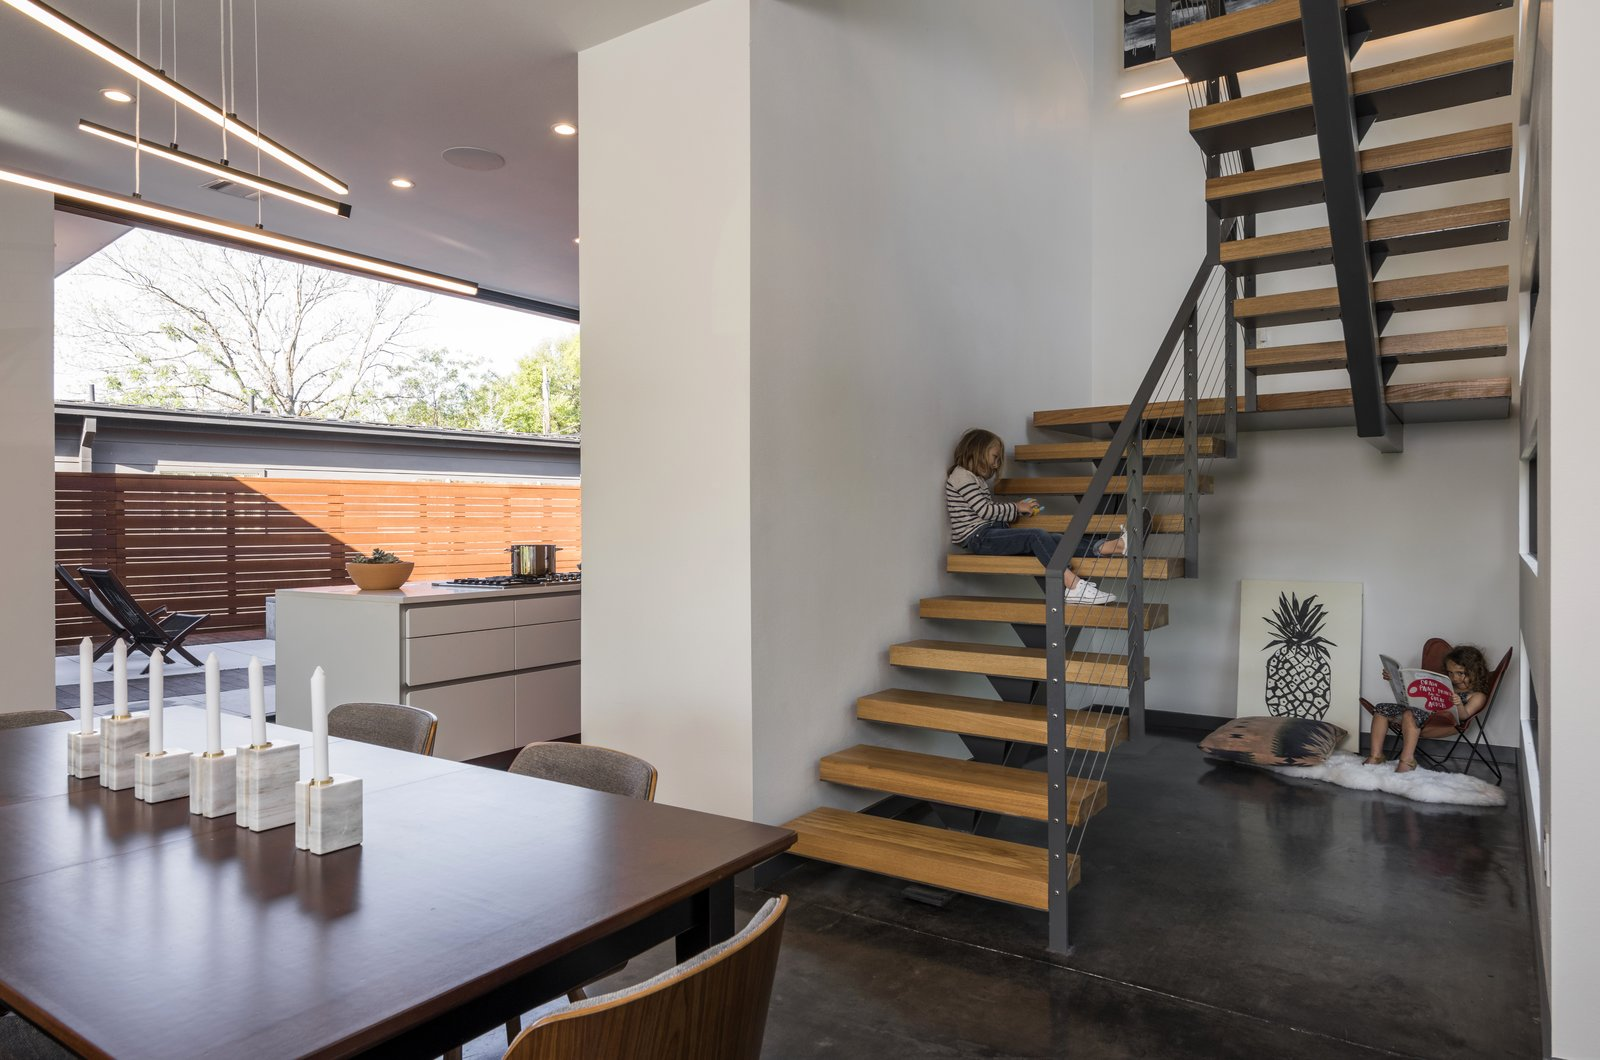 Photo 6 of 24 in Perch Haus by M Gooden Design - Dwell